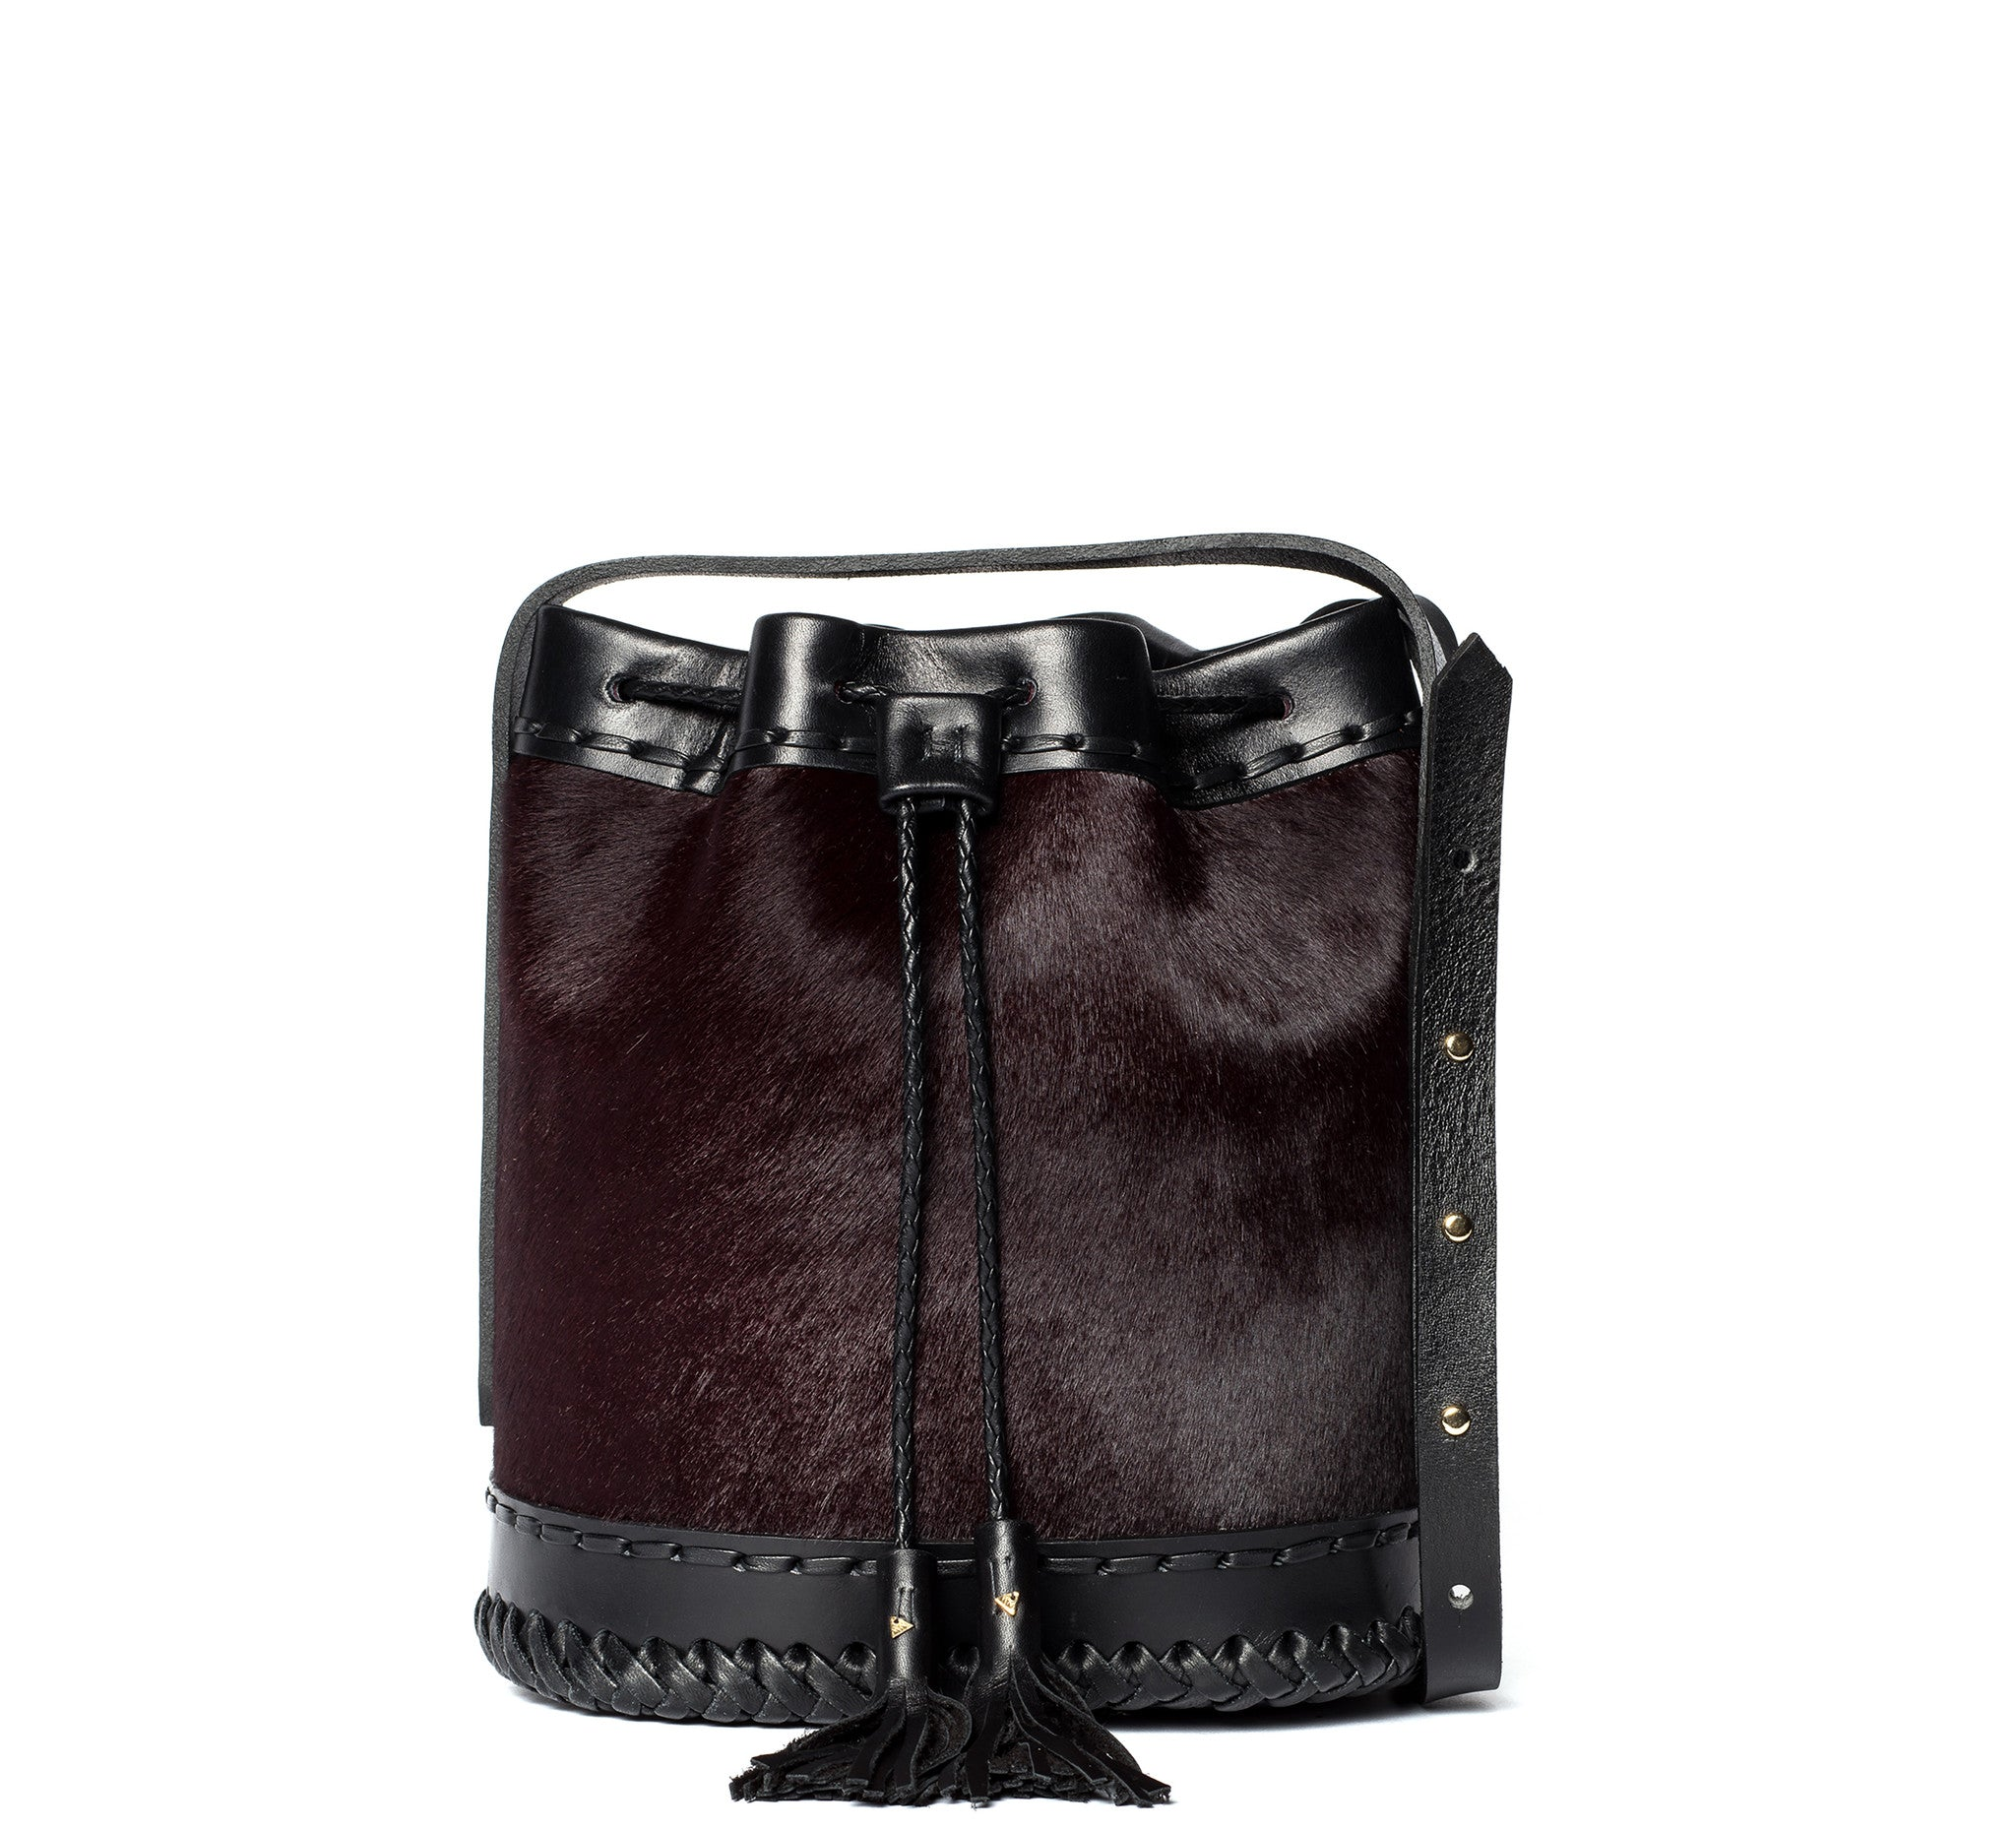 ox blood burgundy maroon black Leather cowhide Pony Cow Fur Small carriage Bag Wendy Nichol Luxury Handbag purse Designer handmade in NYC New York City bucket Drawstring Draw String Pouch Small fringe tassel Mini cross body adjustable durable strap High Quality Leather